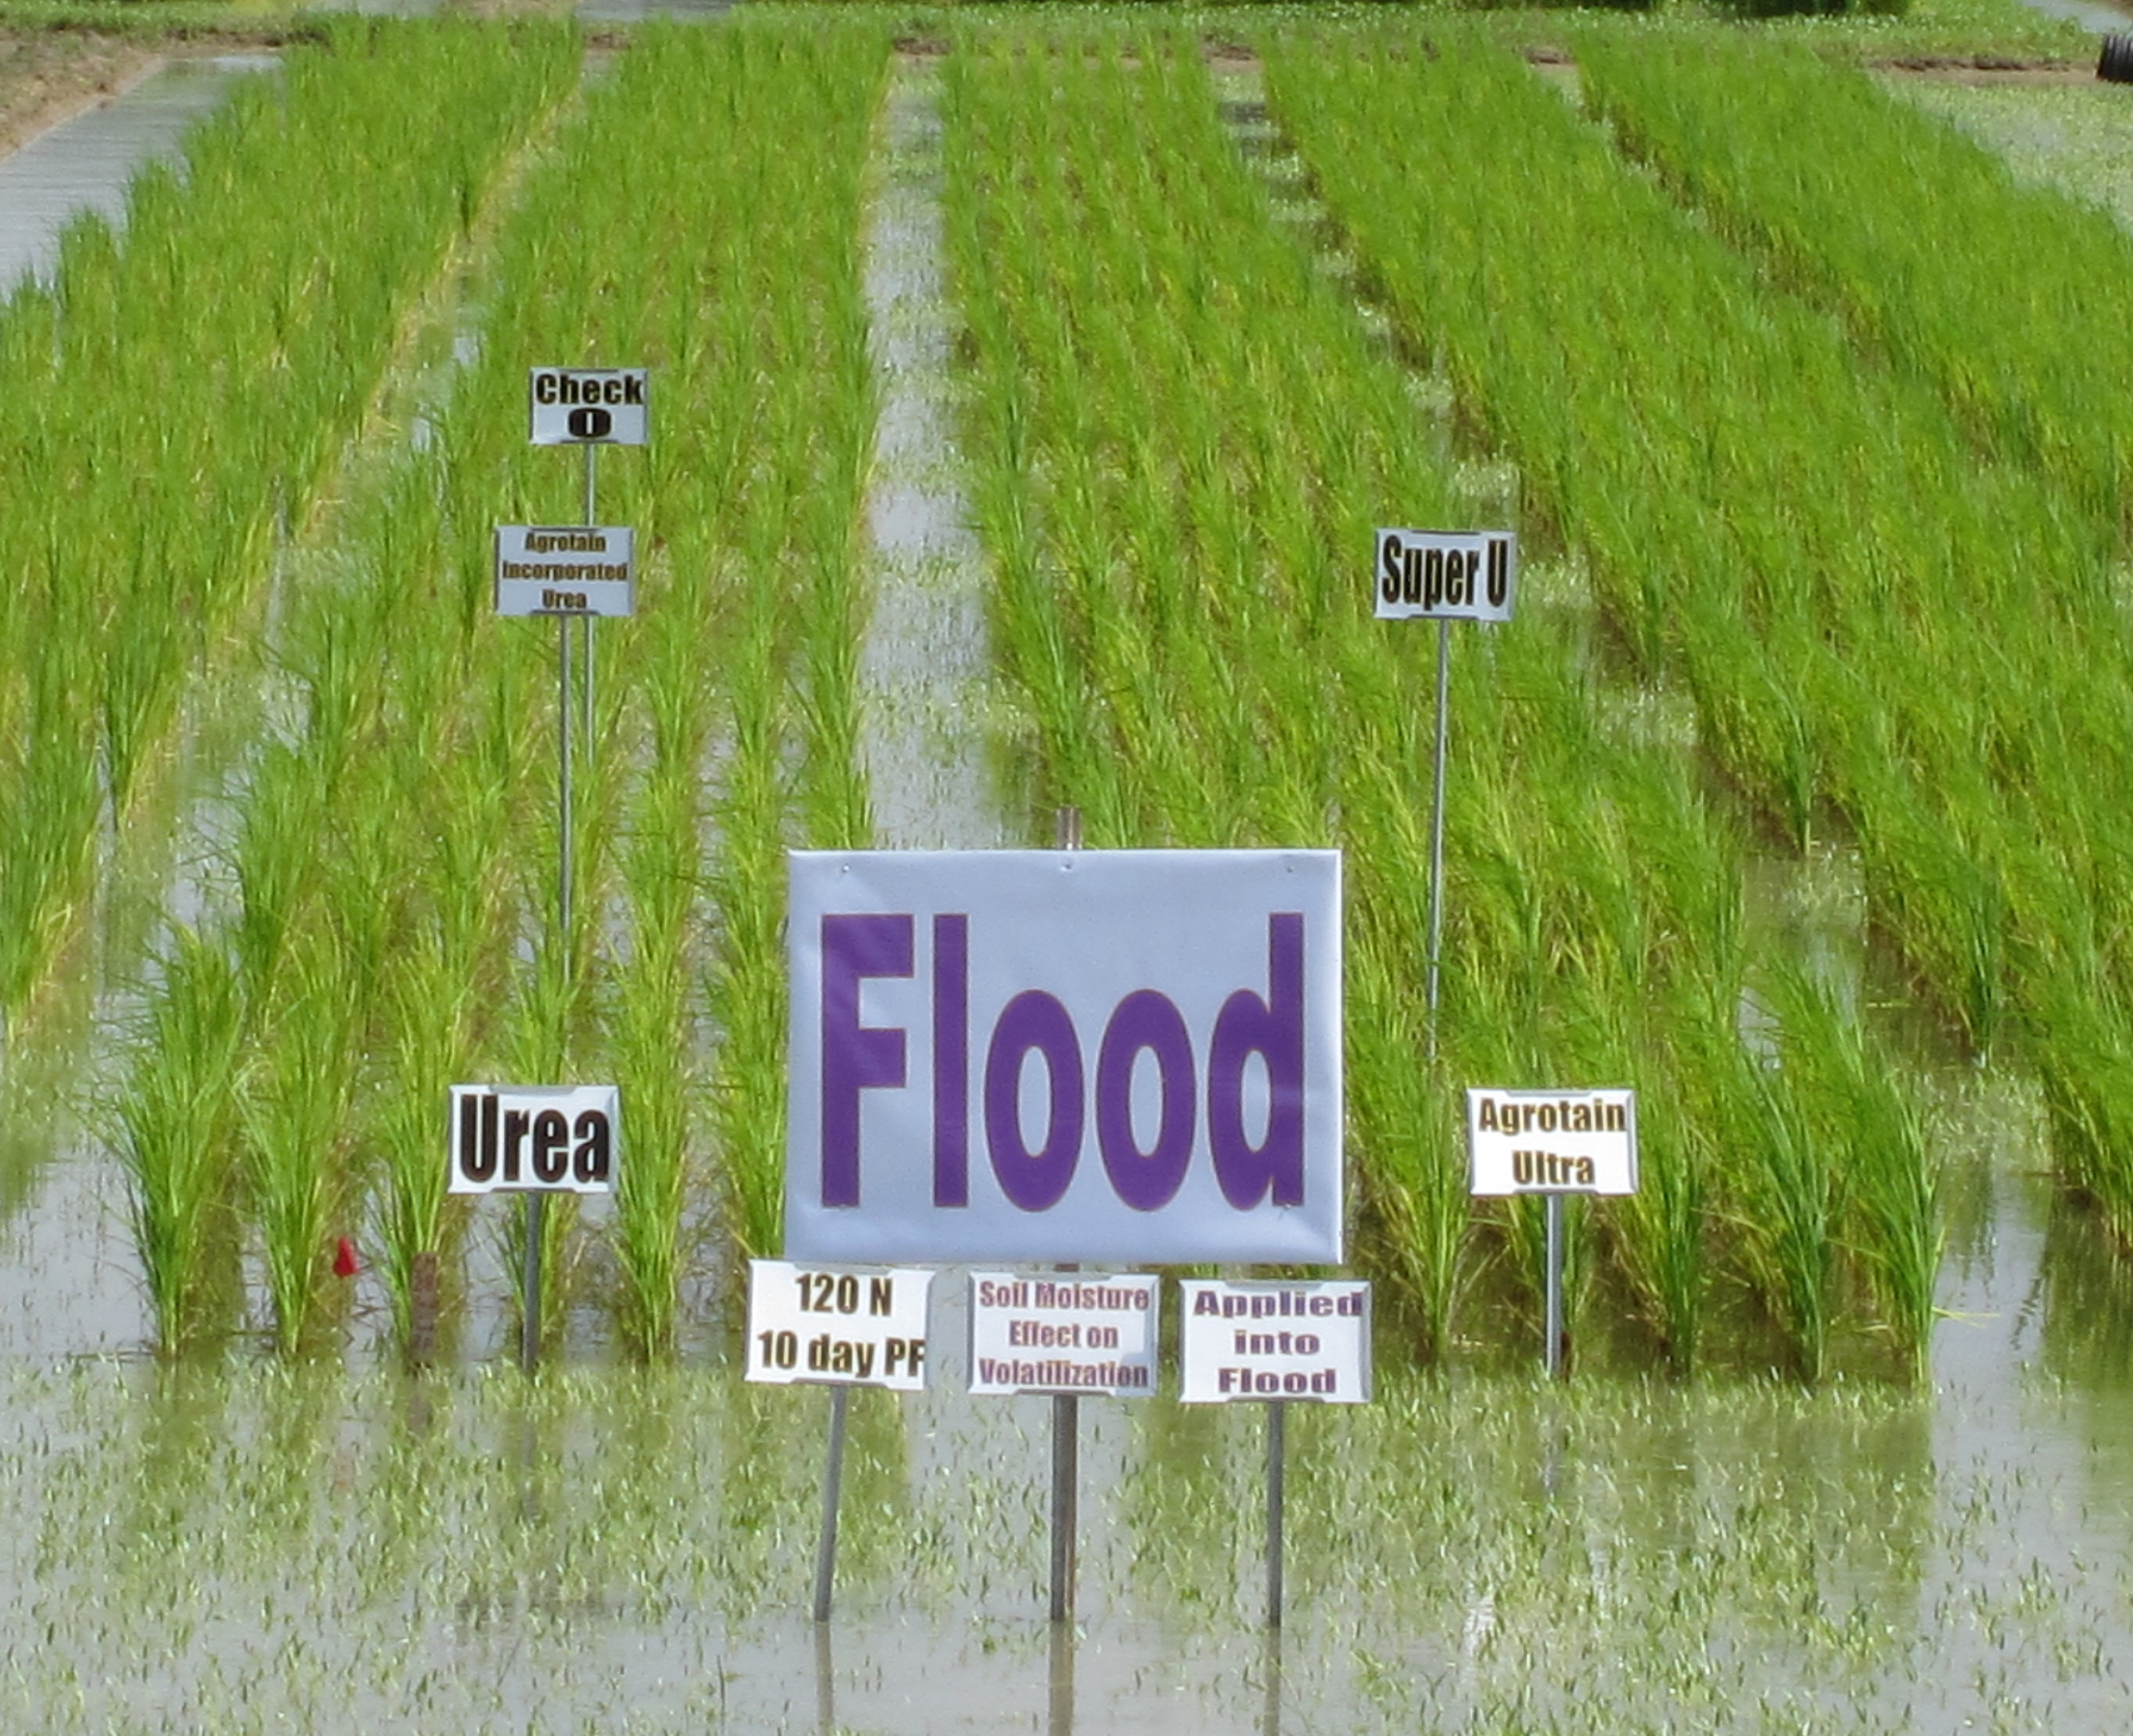 fertilizer study - flooded field.jpg thumbnail